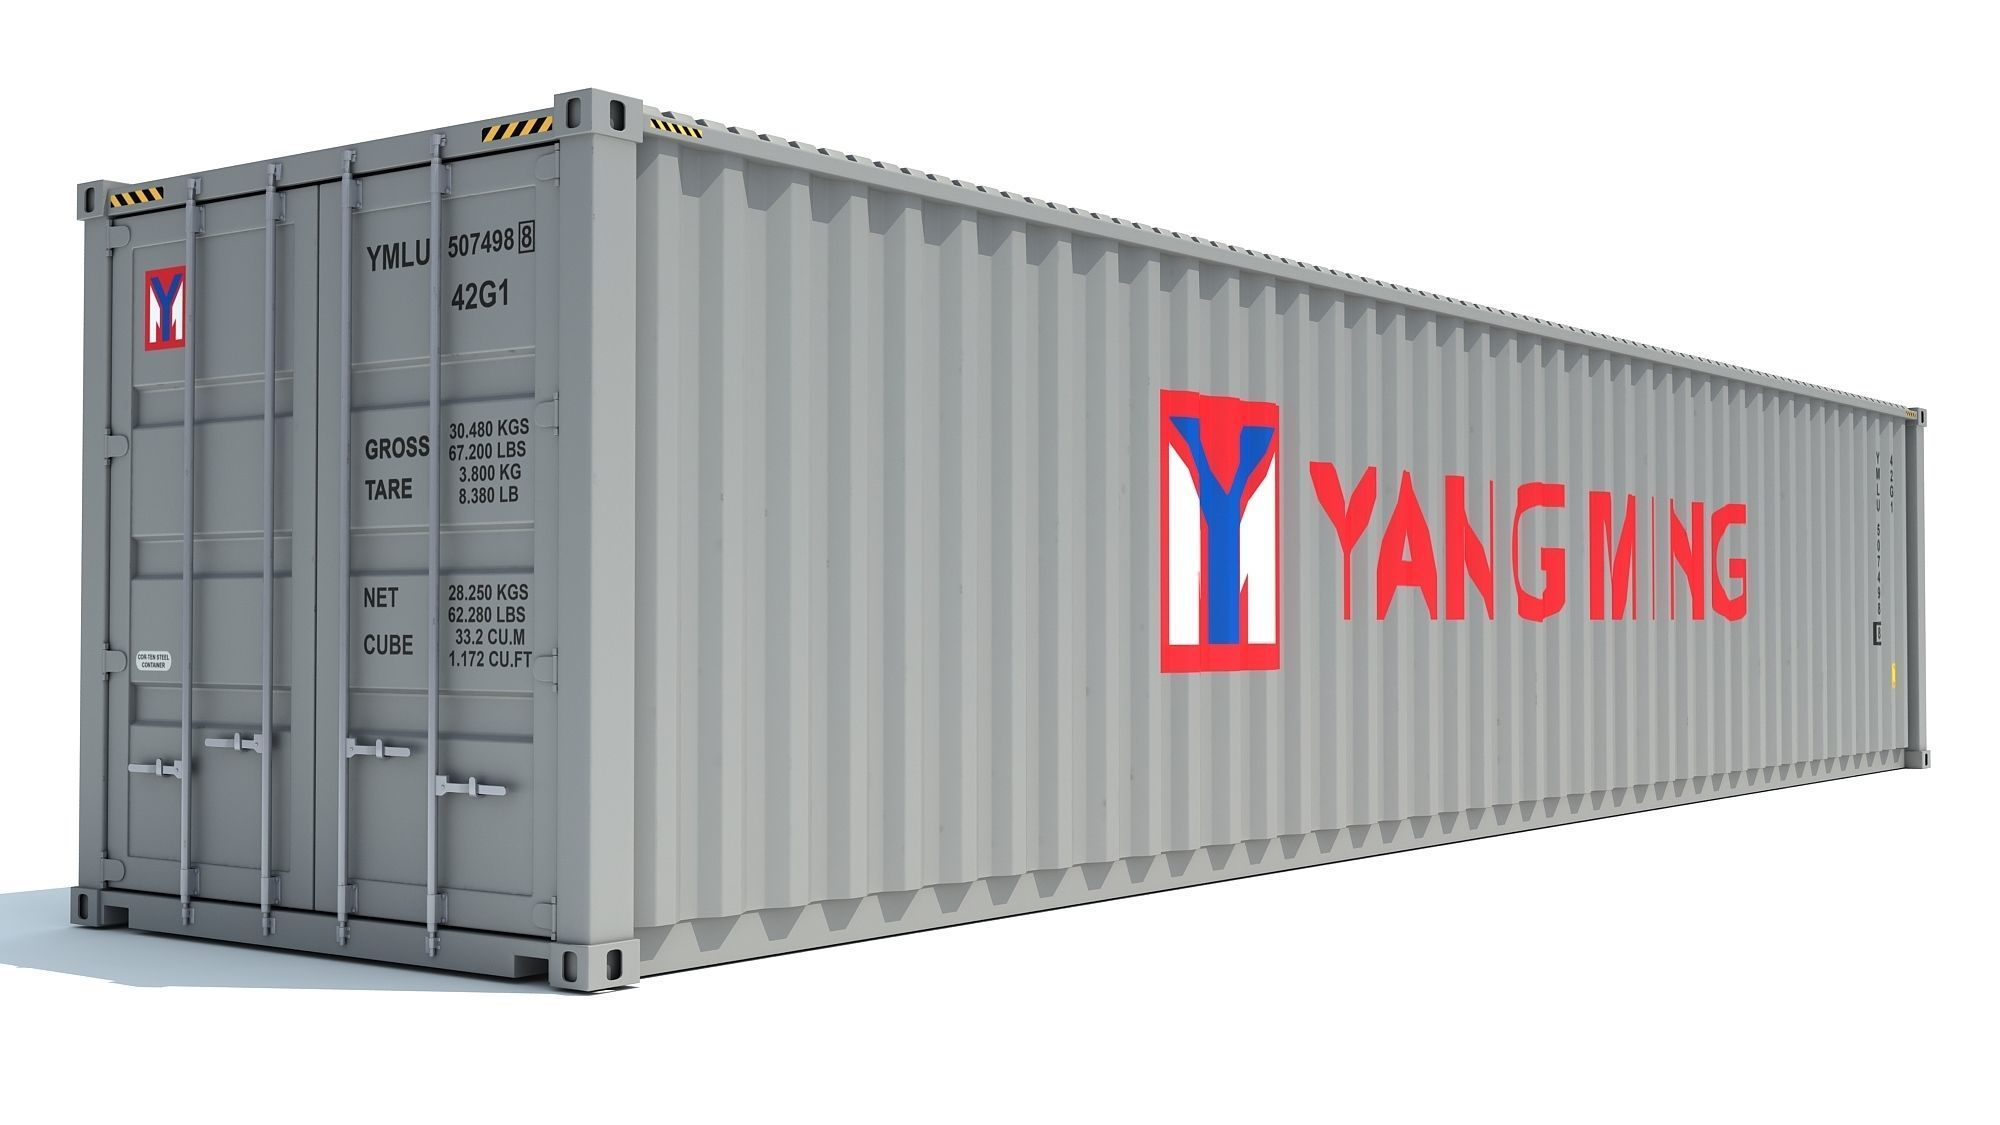 Shipping Container Yang Ming